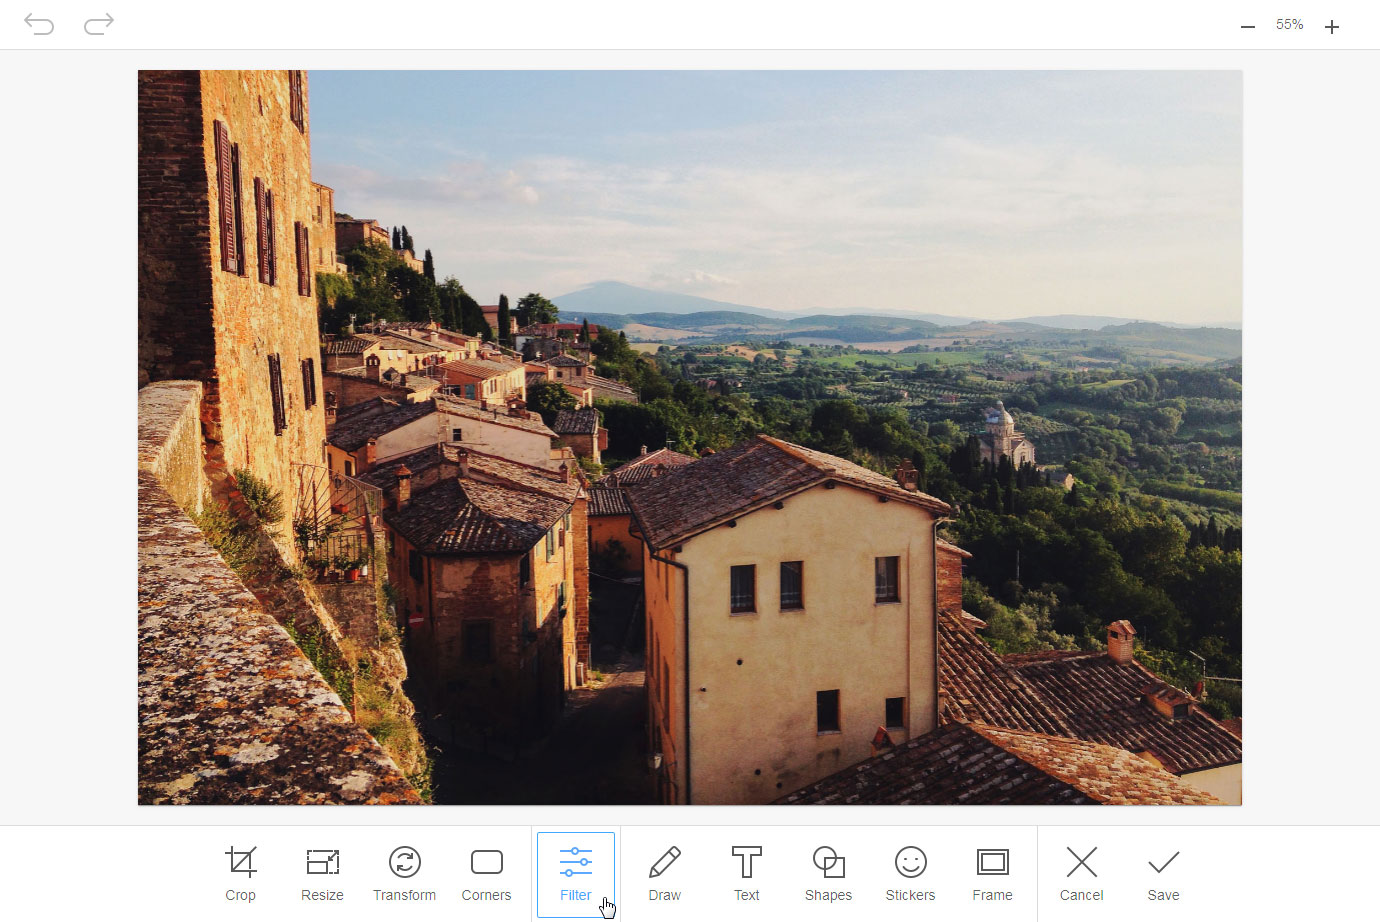 Image Editor toolbar screenshot